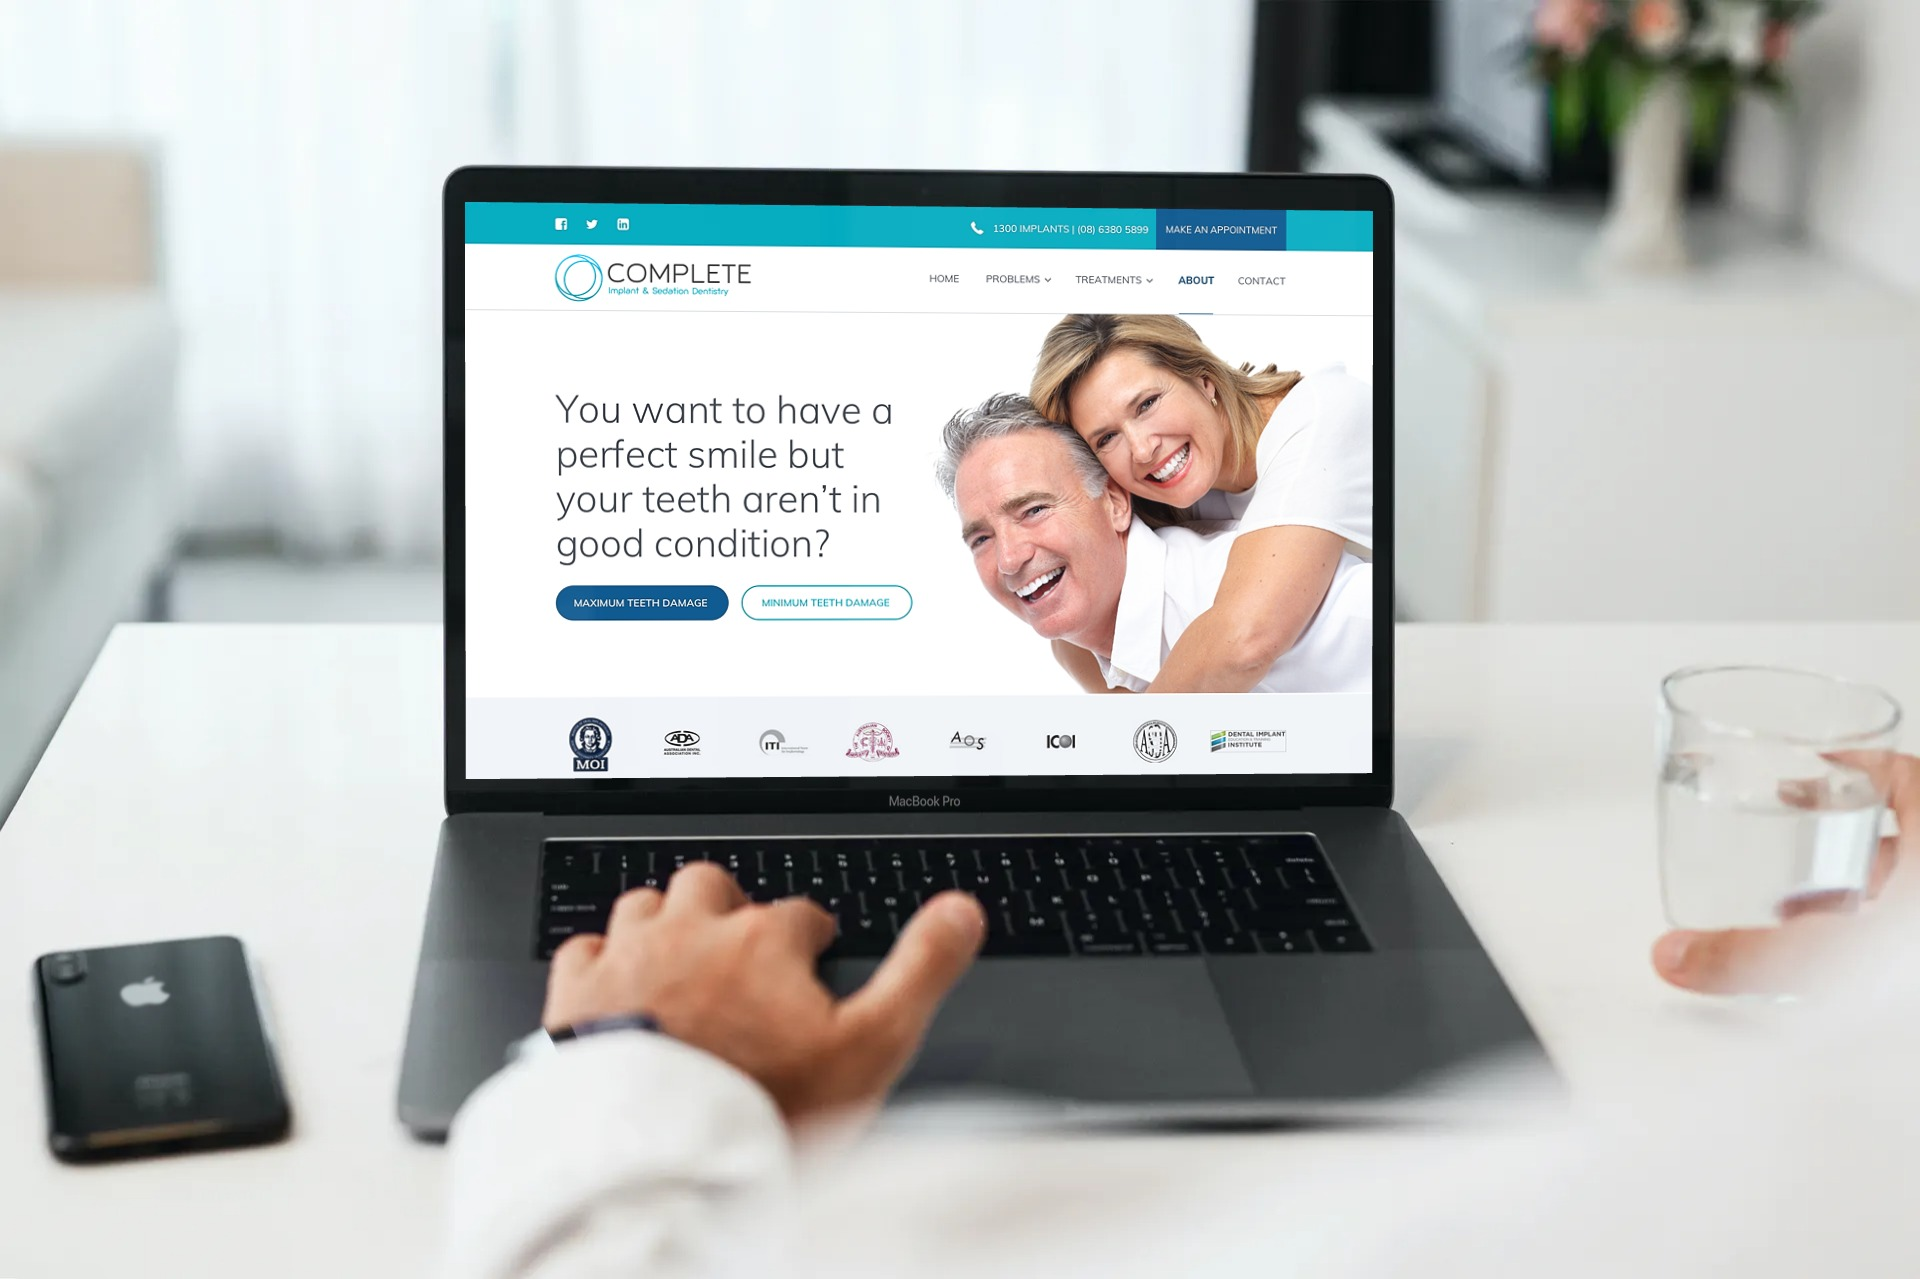 Complete Implant & Sedation Dentistry (now Perth Implant Dentistry) website has compact content.